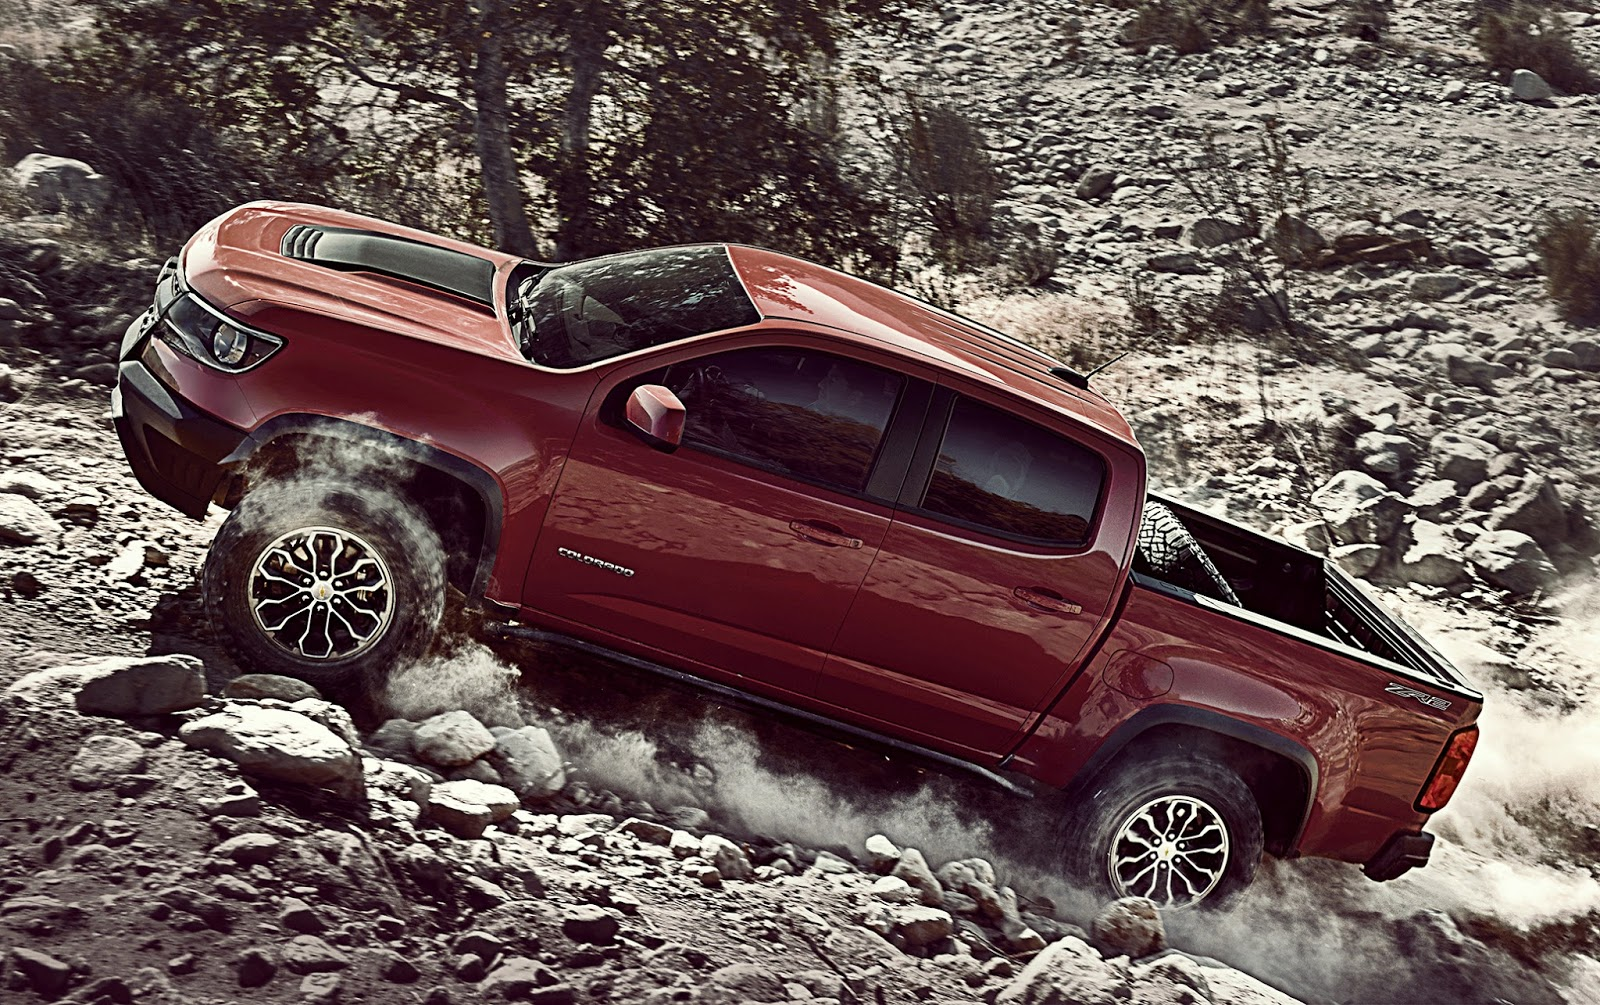 New colorado zr2 a segment of one among off road pickups new performance variant of the chevrolet colorado excels in tight two tracks